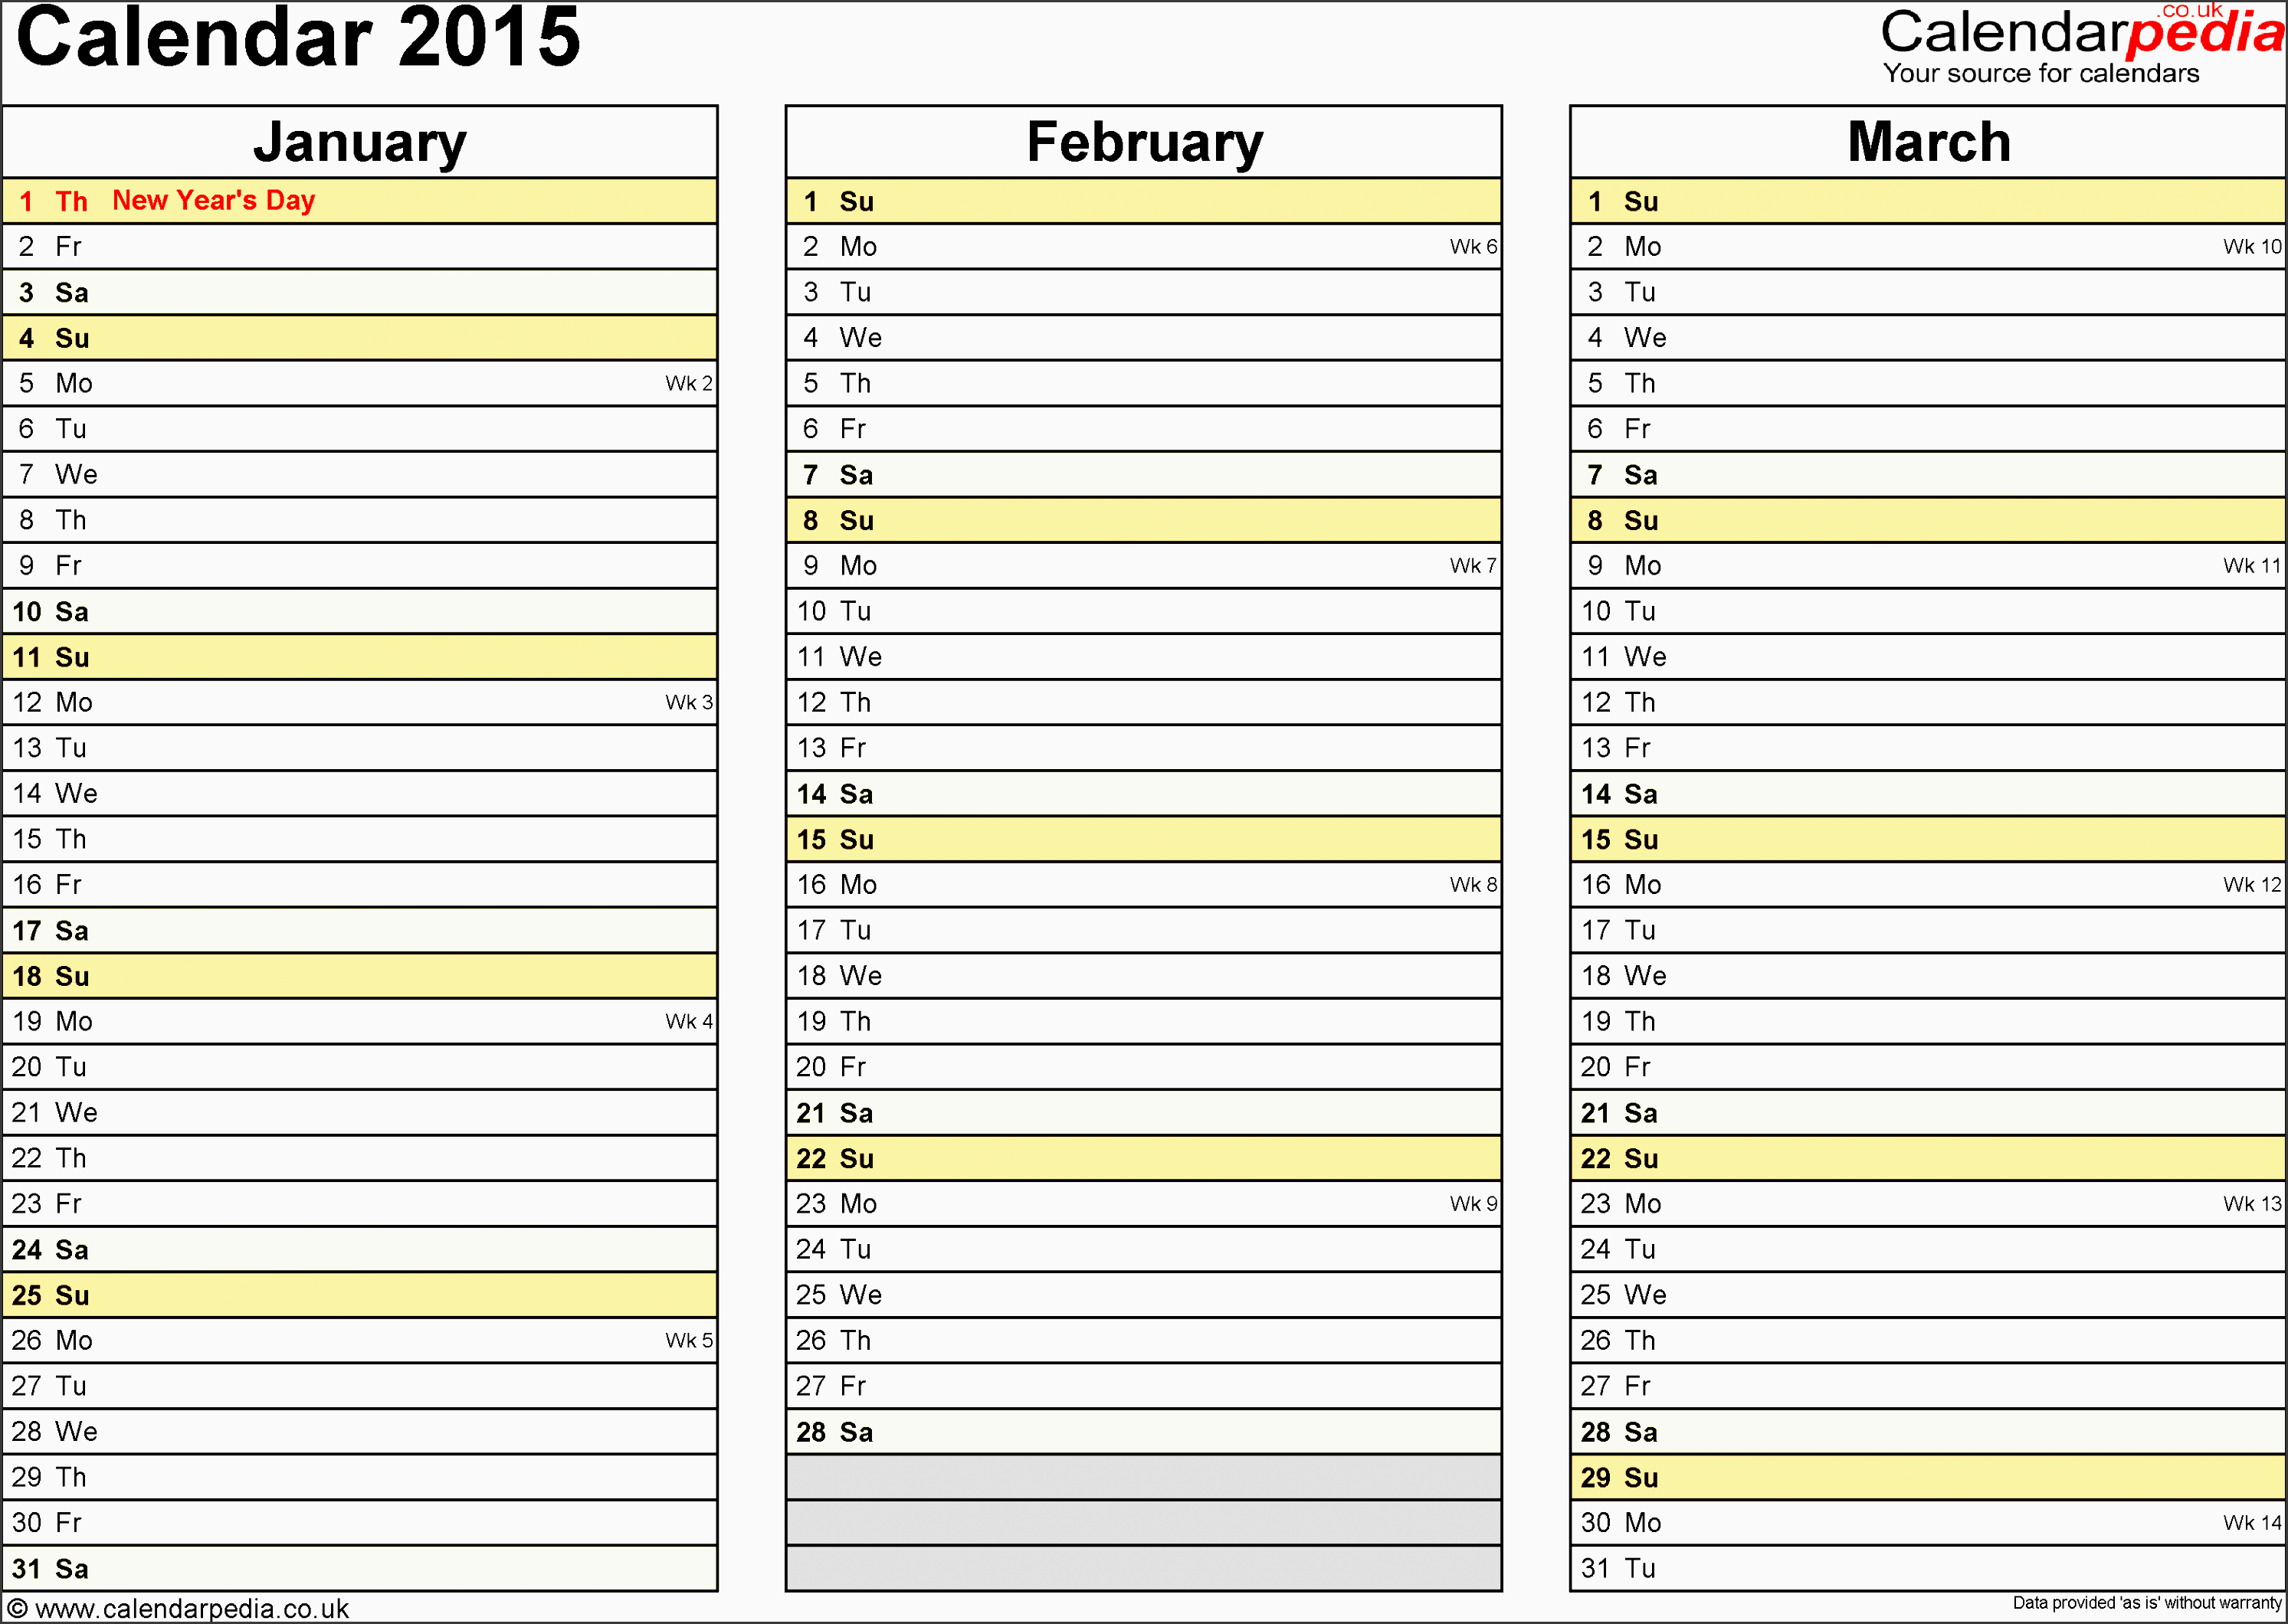 template 5 yearly calendar 2015 as excel template landscape orientation 4 pages